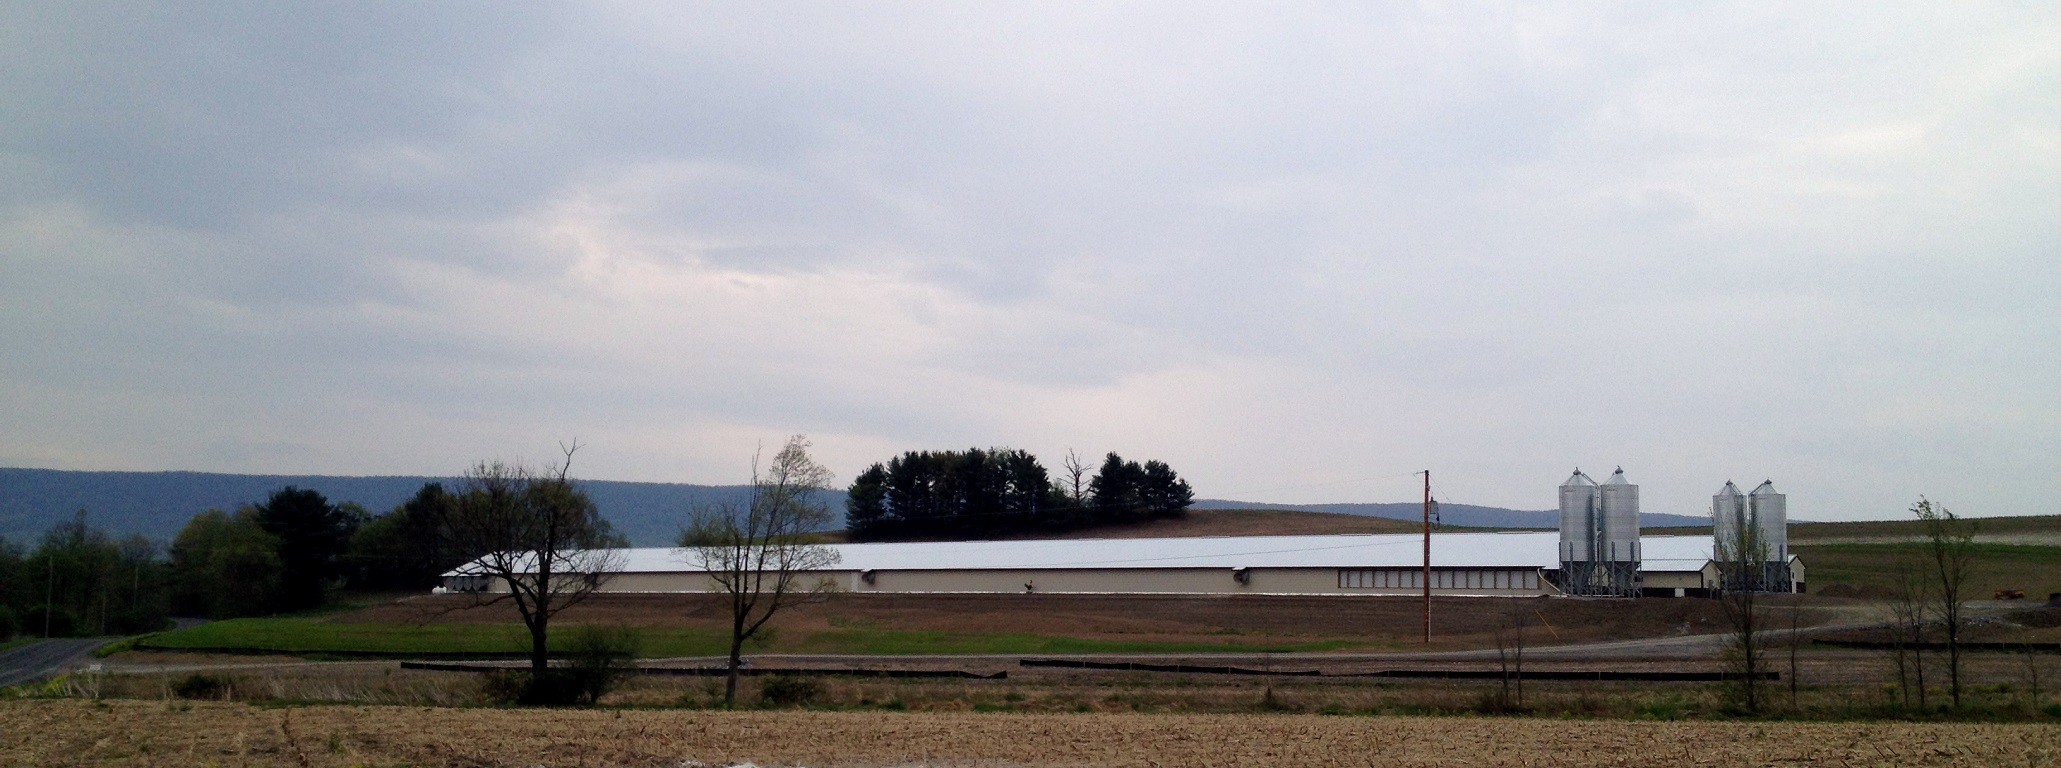 Poultry-Barns-2